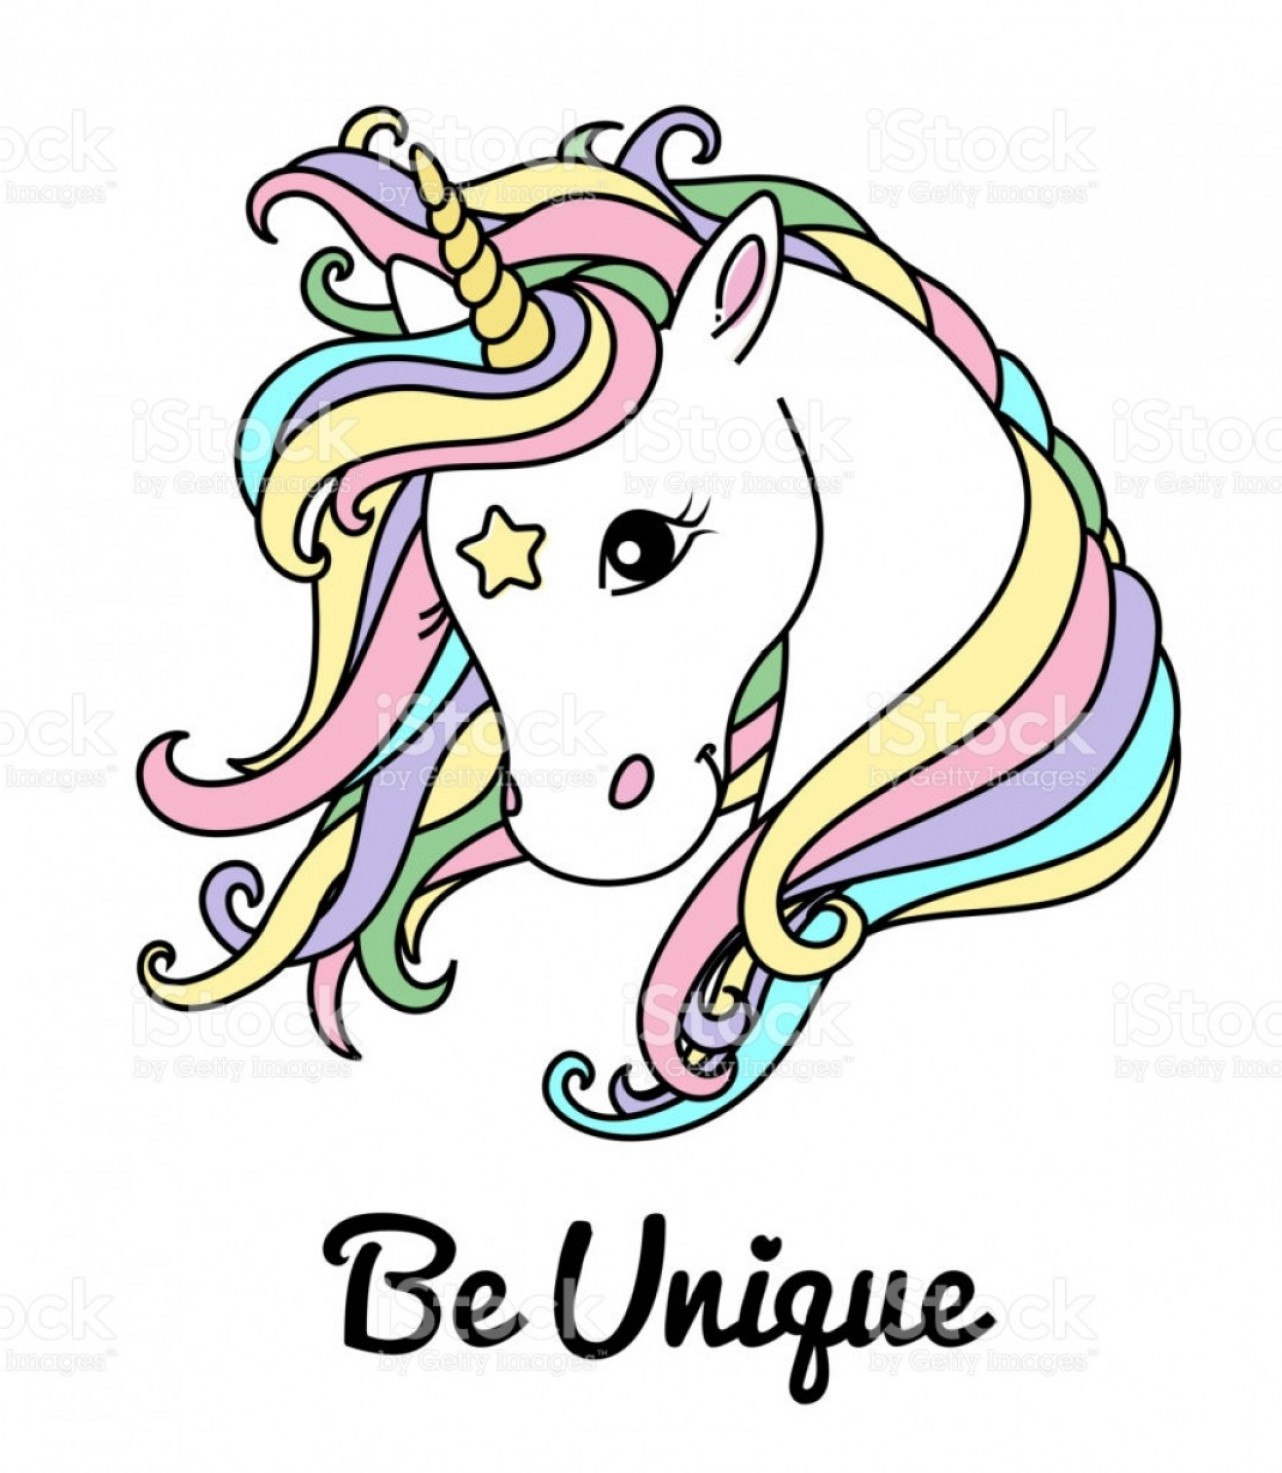 Unicorn Vector Eyes: White Unicorn Vector Head For Shirt Text Be Unique Cute Unicorn With Big Eyes Gm